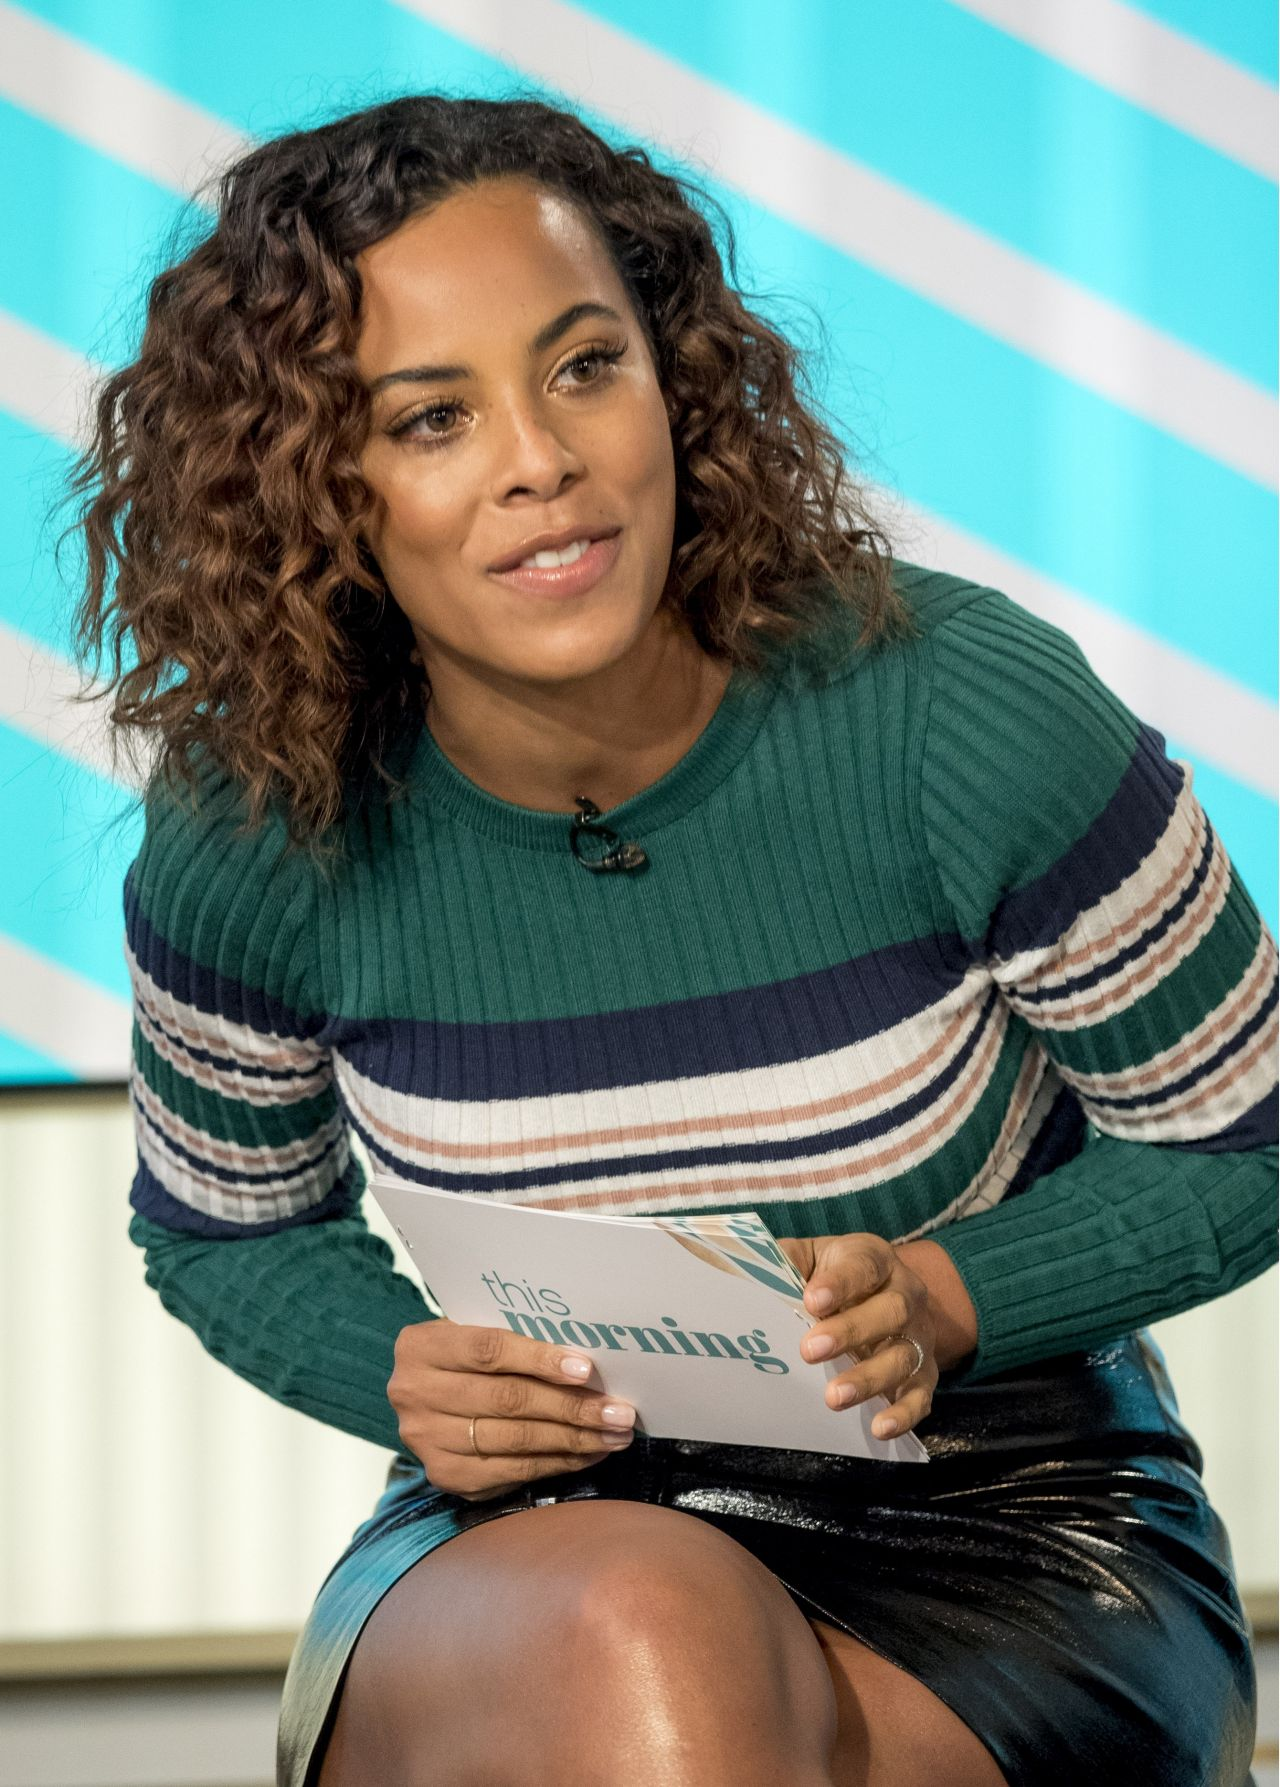 rochelle humes - photo #31